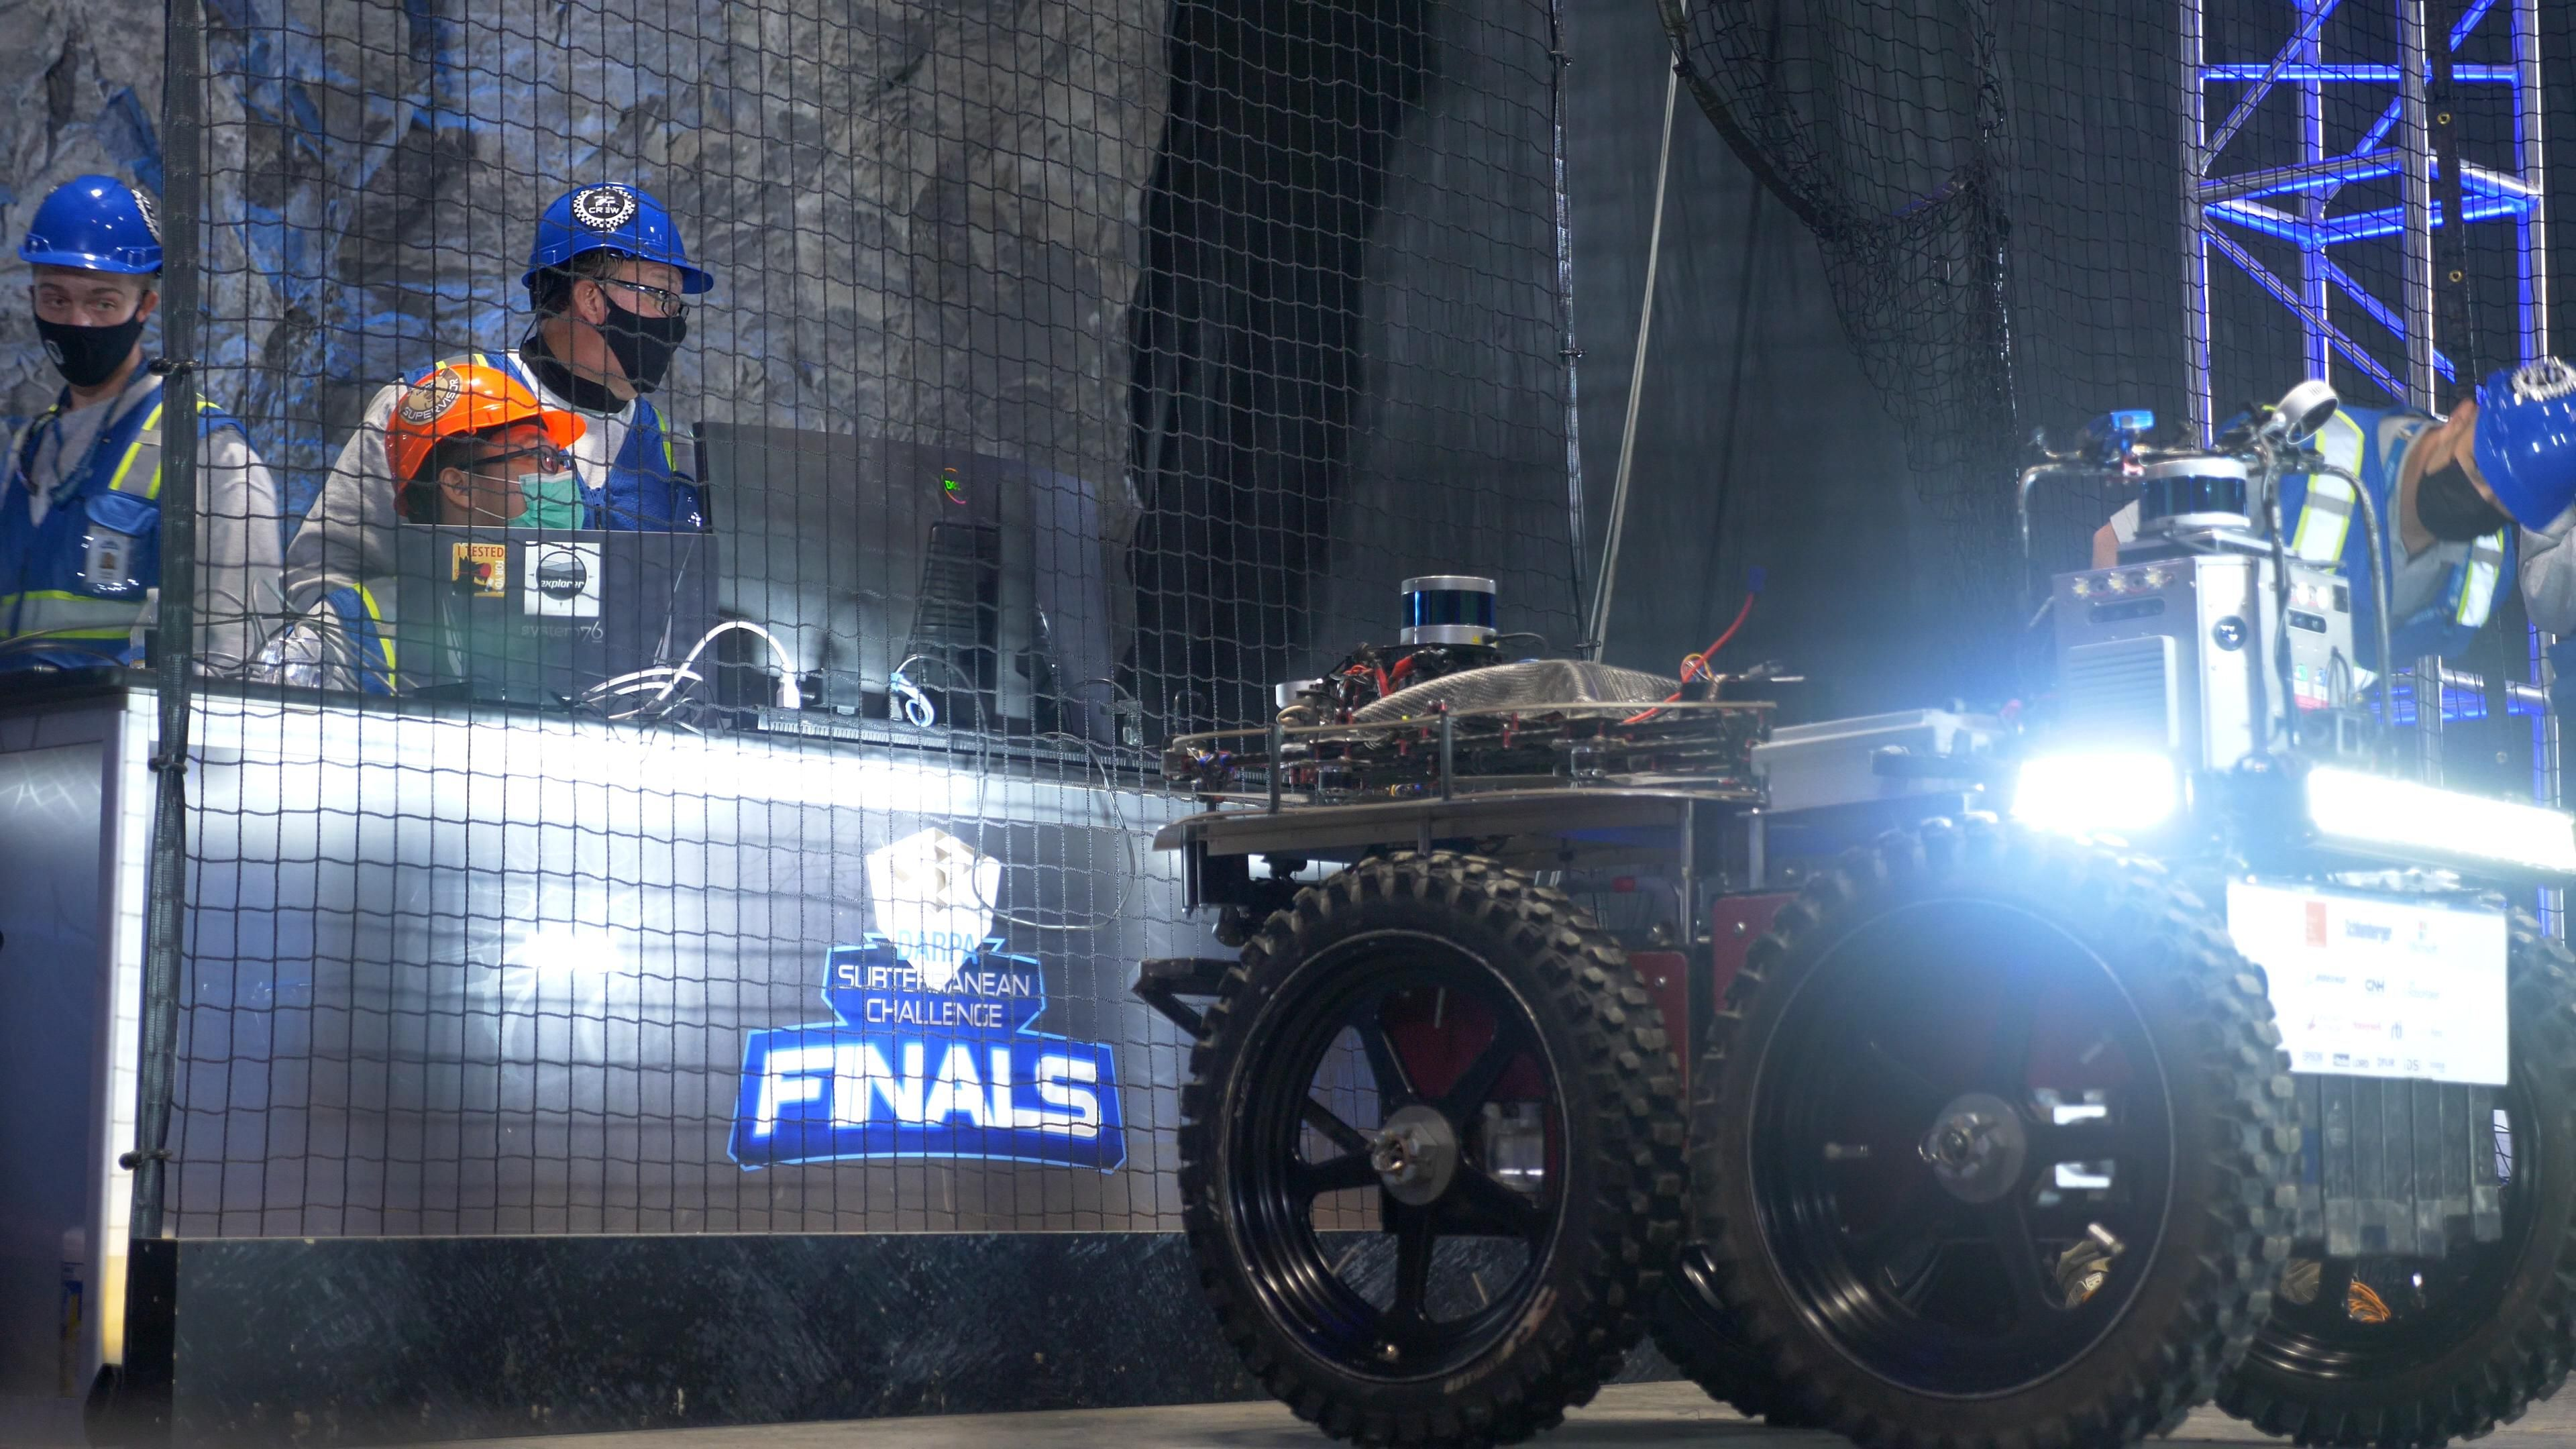 Human operators and a robot during the DARPA Subterranean Challenge Finals